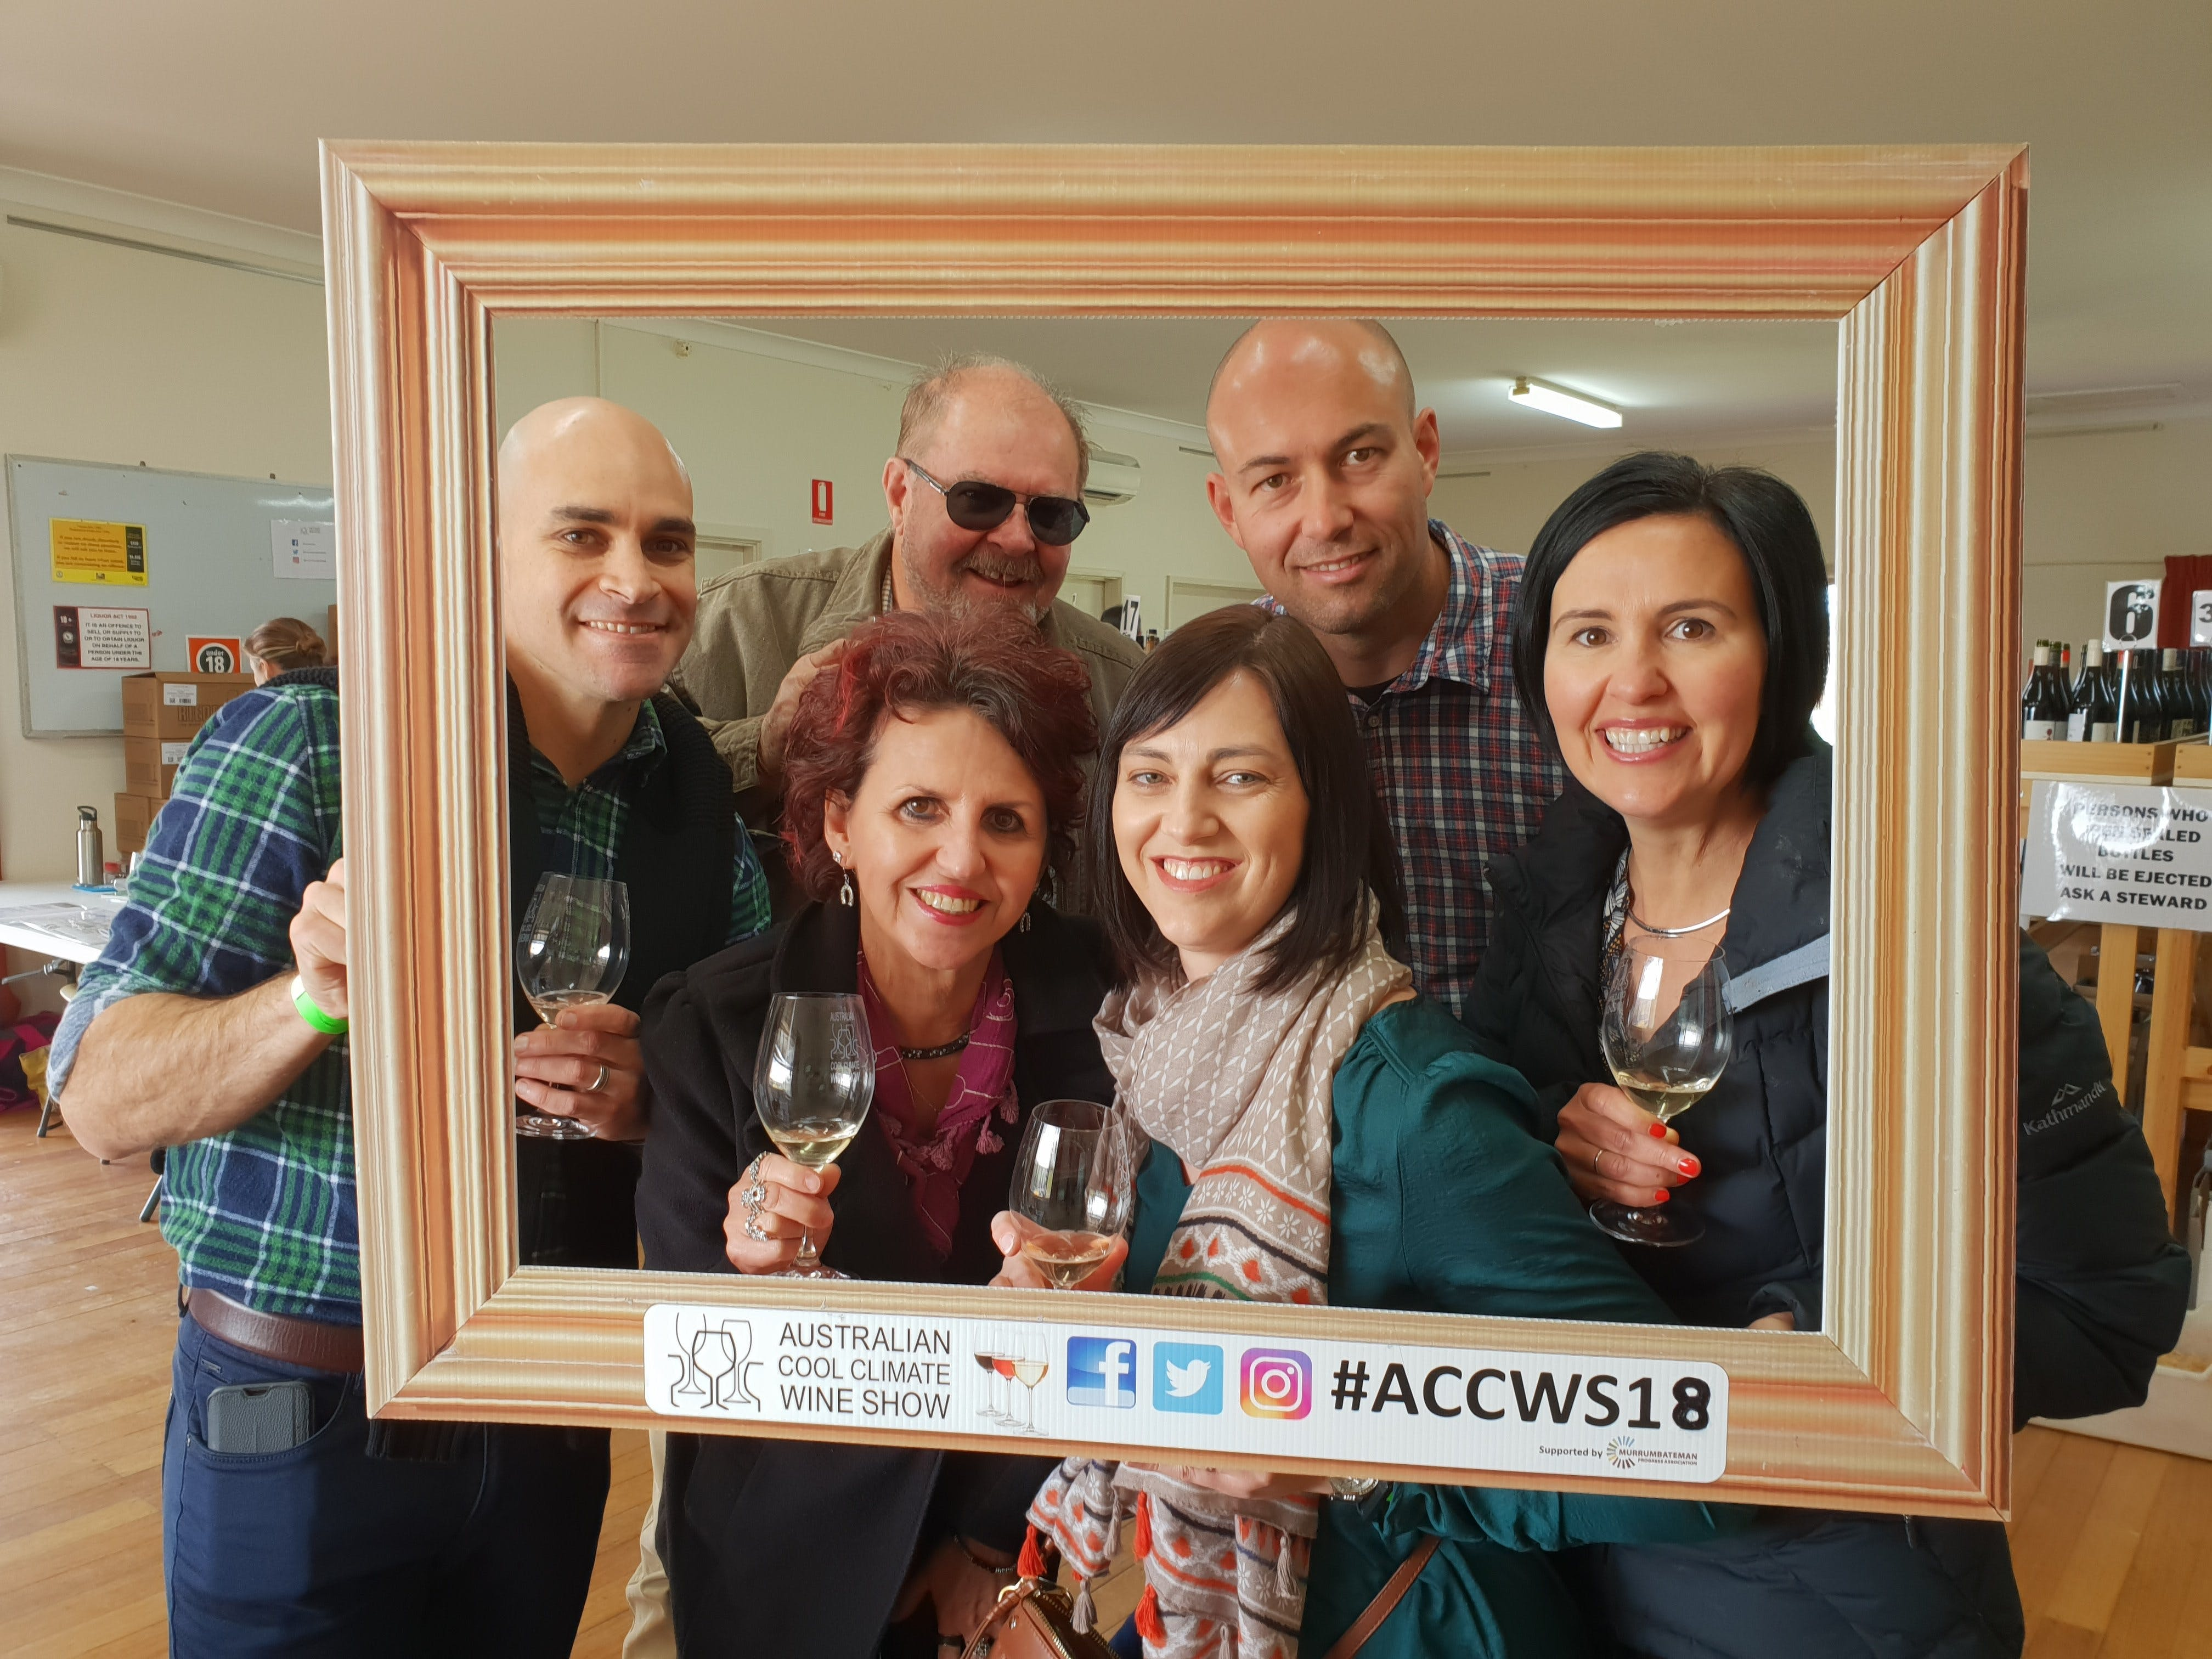 Australian Cool Climate Wine Show - Accommodation Batemans Bay